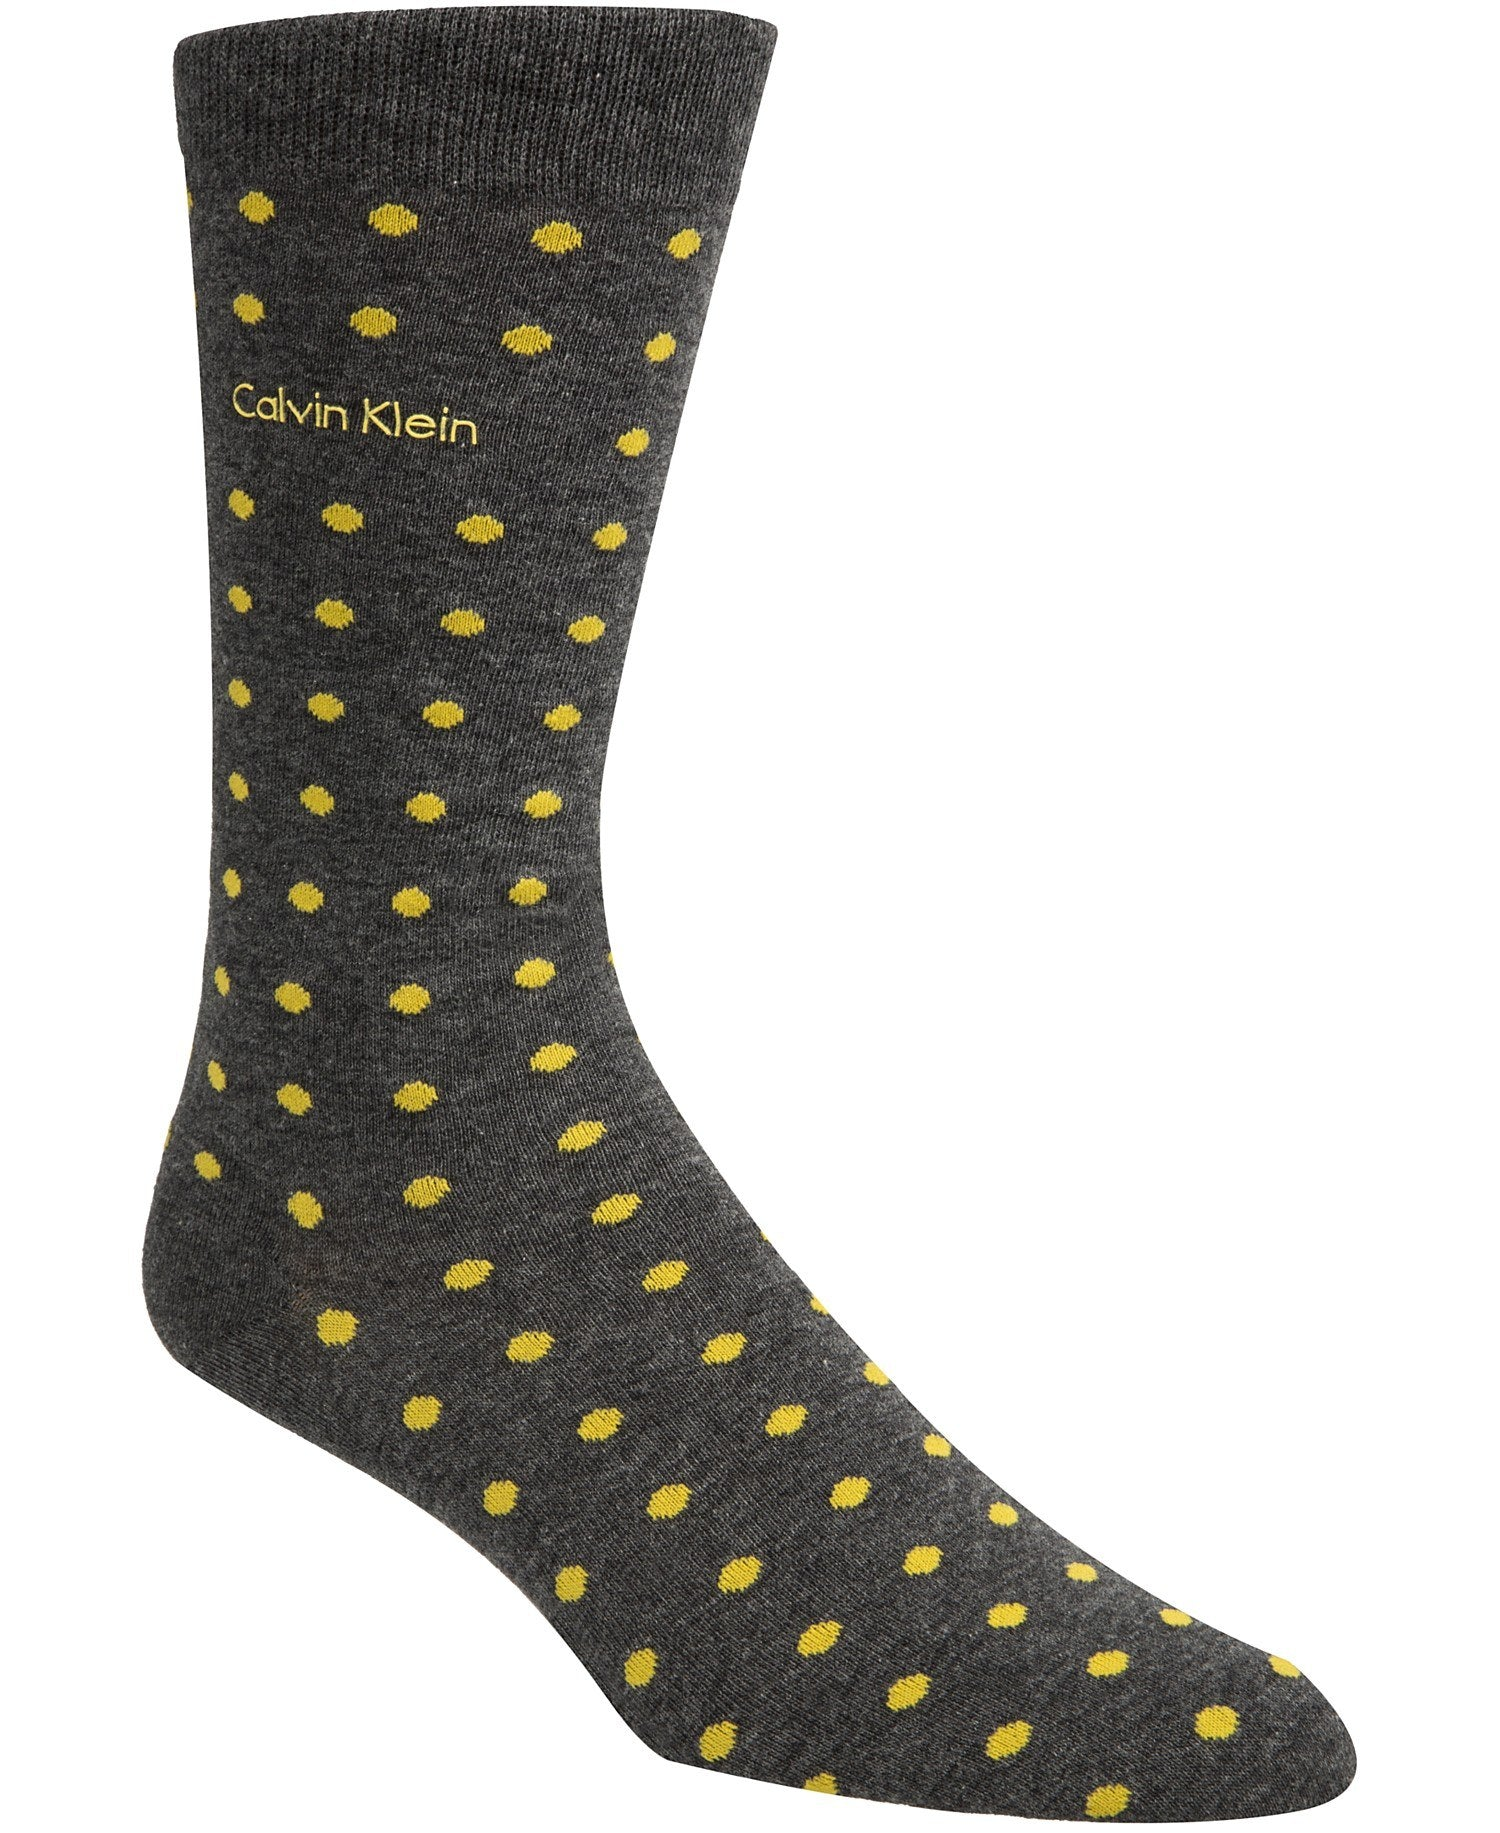 Calvin Klein Mens Polka Dot Dress Socks Yellow